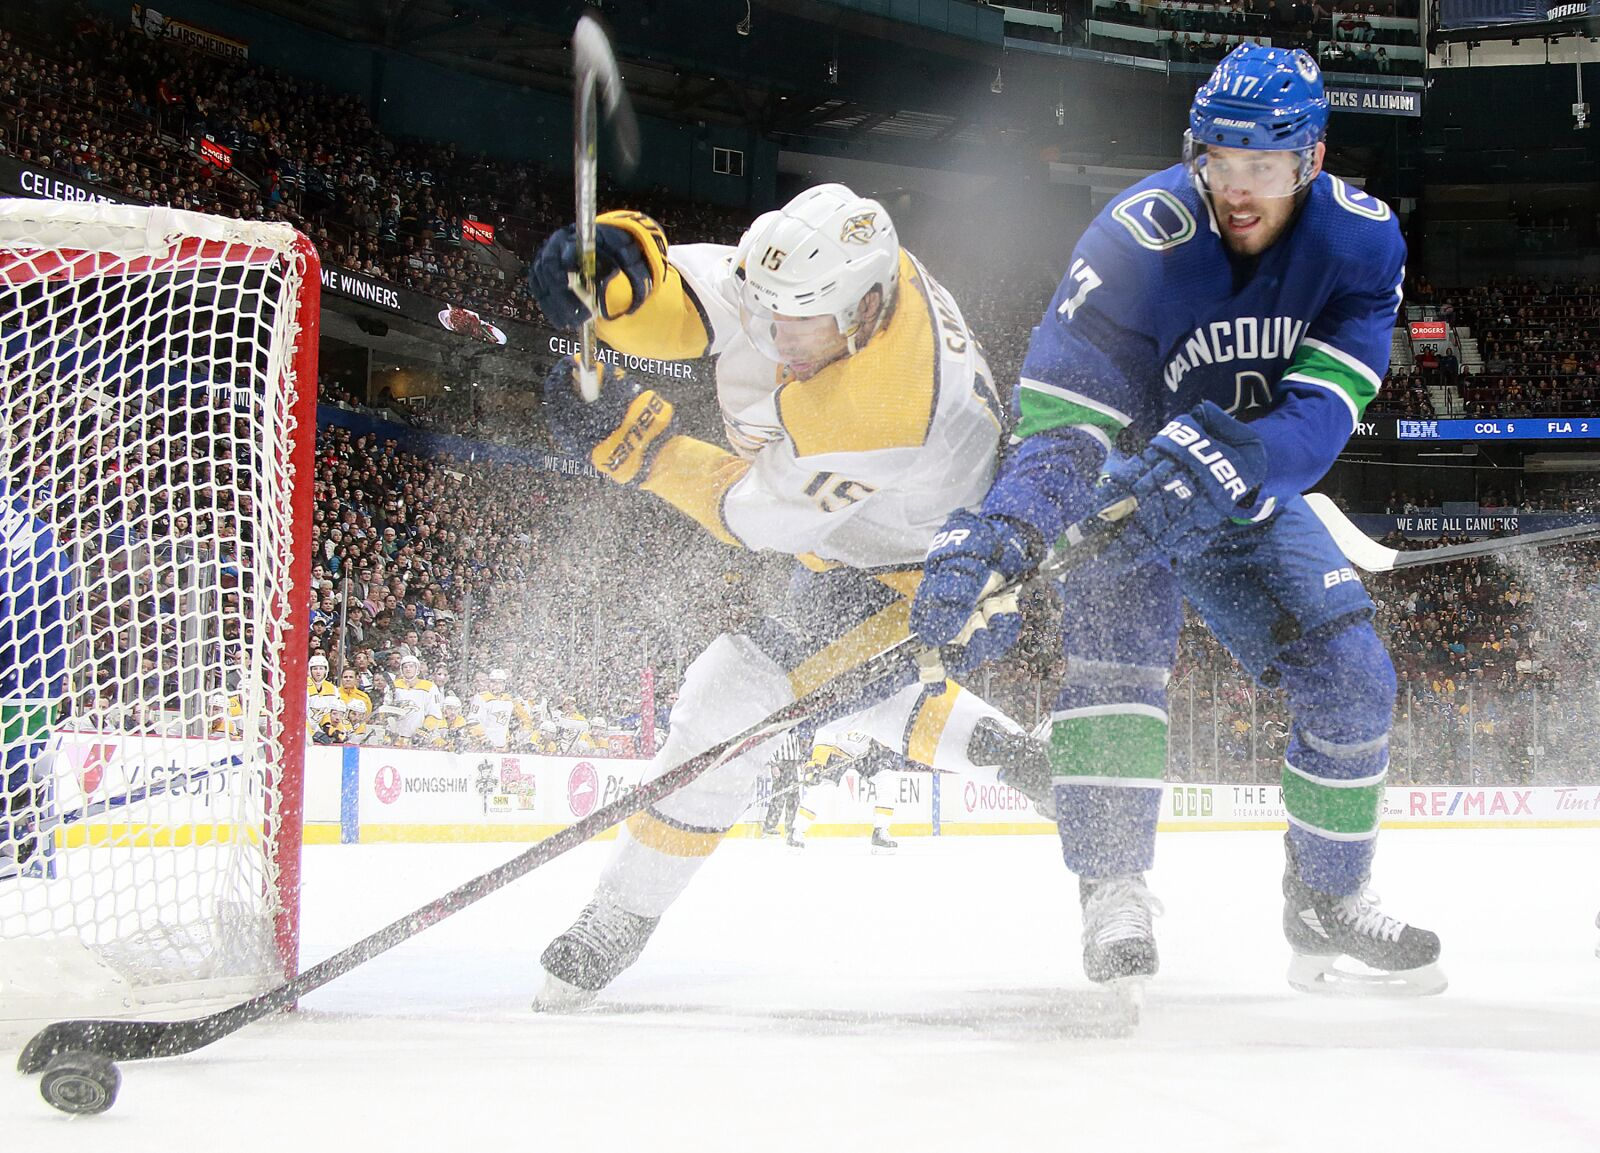 Vancouver Canucks: A requisite of speed and odd coaching decisions